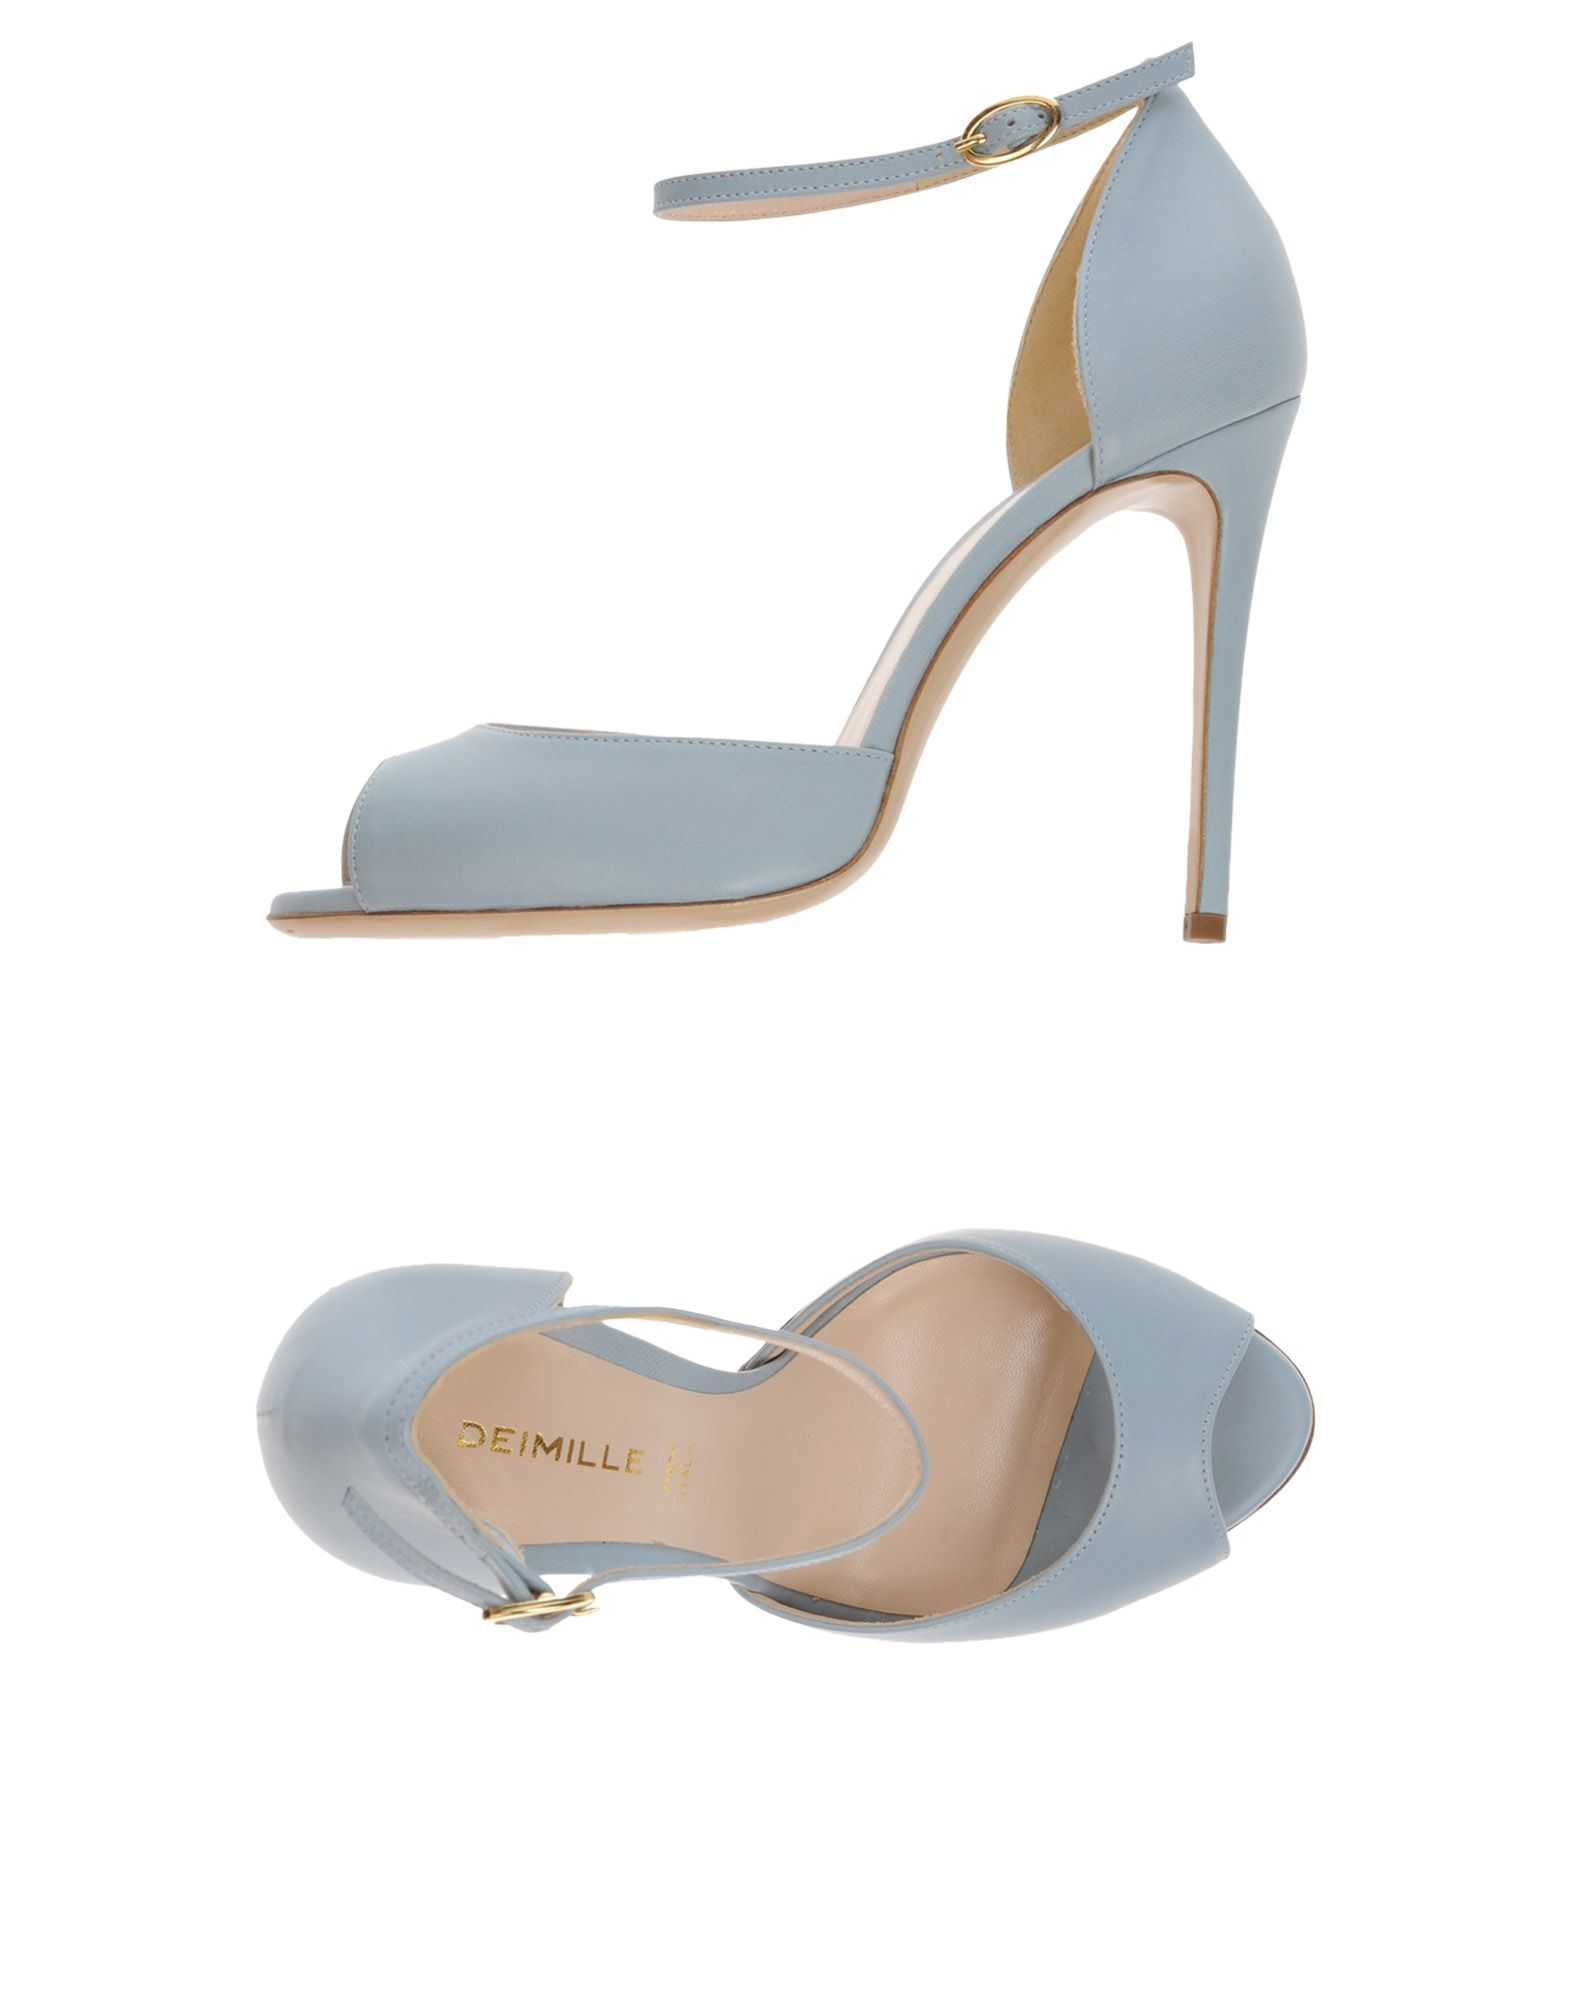 official photos 388d6 4f789 DEIMILLE . #deimille #shoes # | Deimille in 2019 | Sandals ...